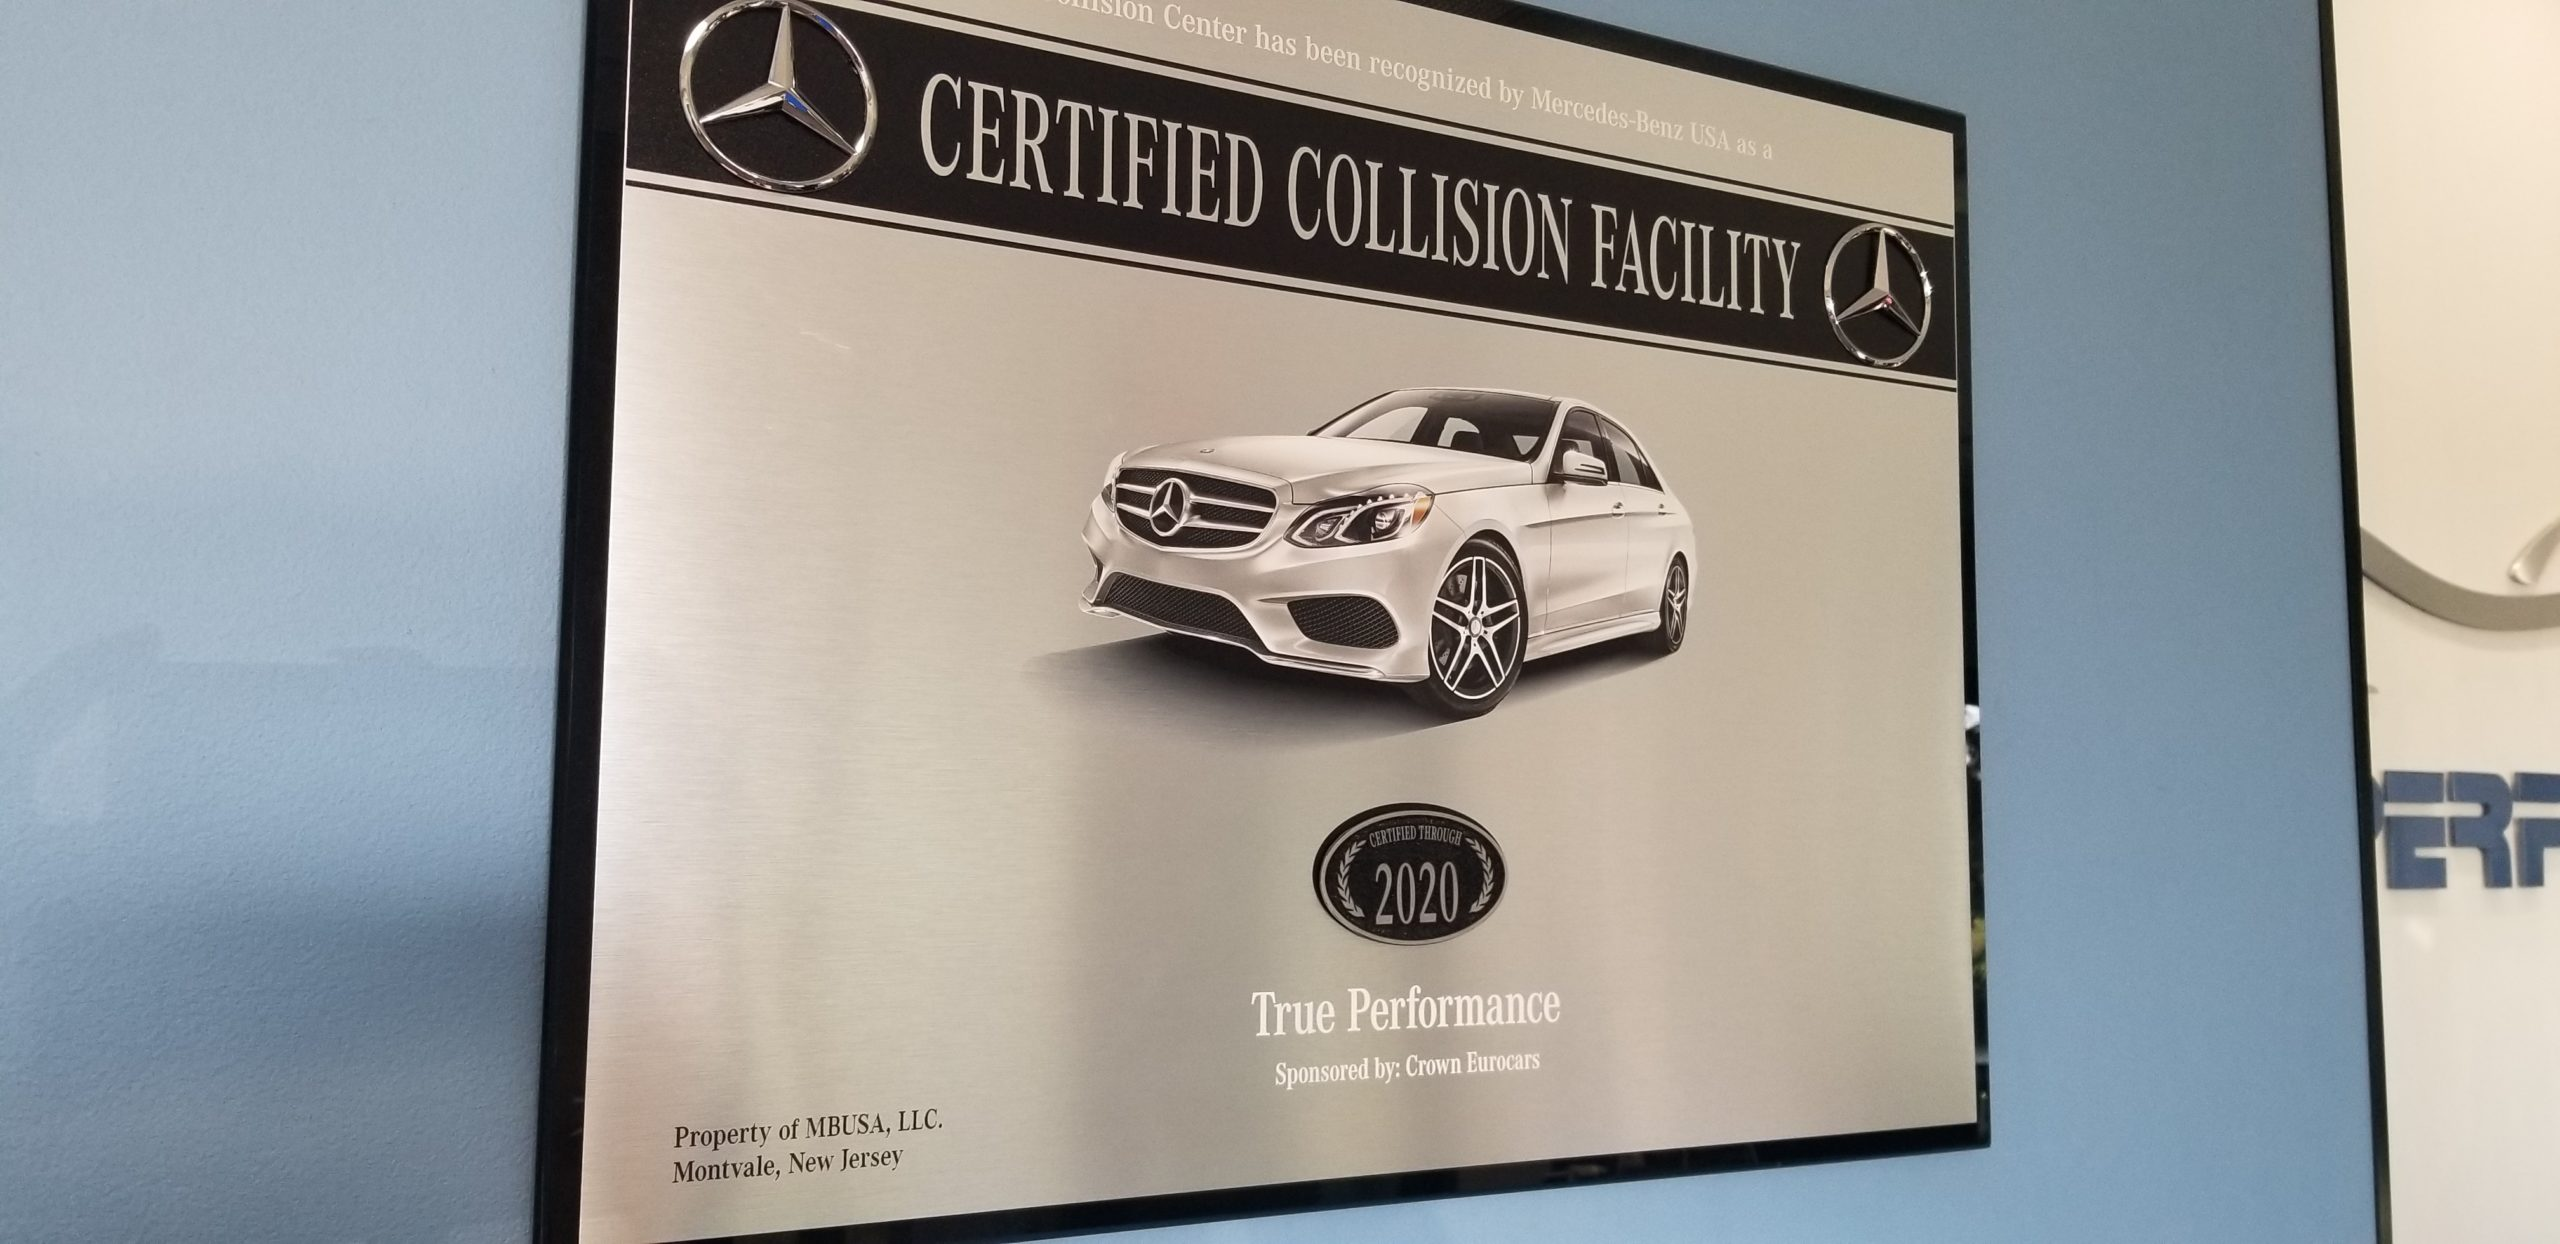 Mercedes Benz Collision Center